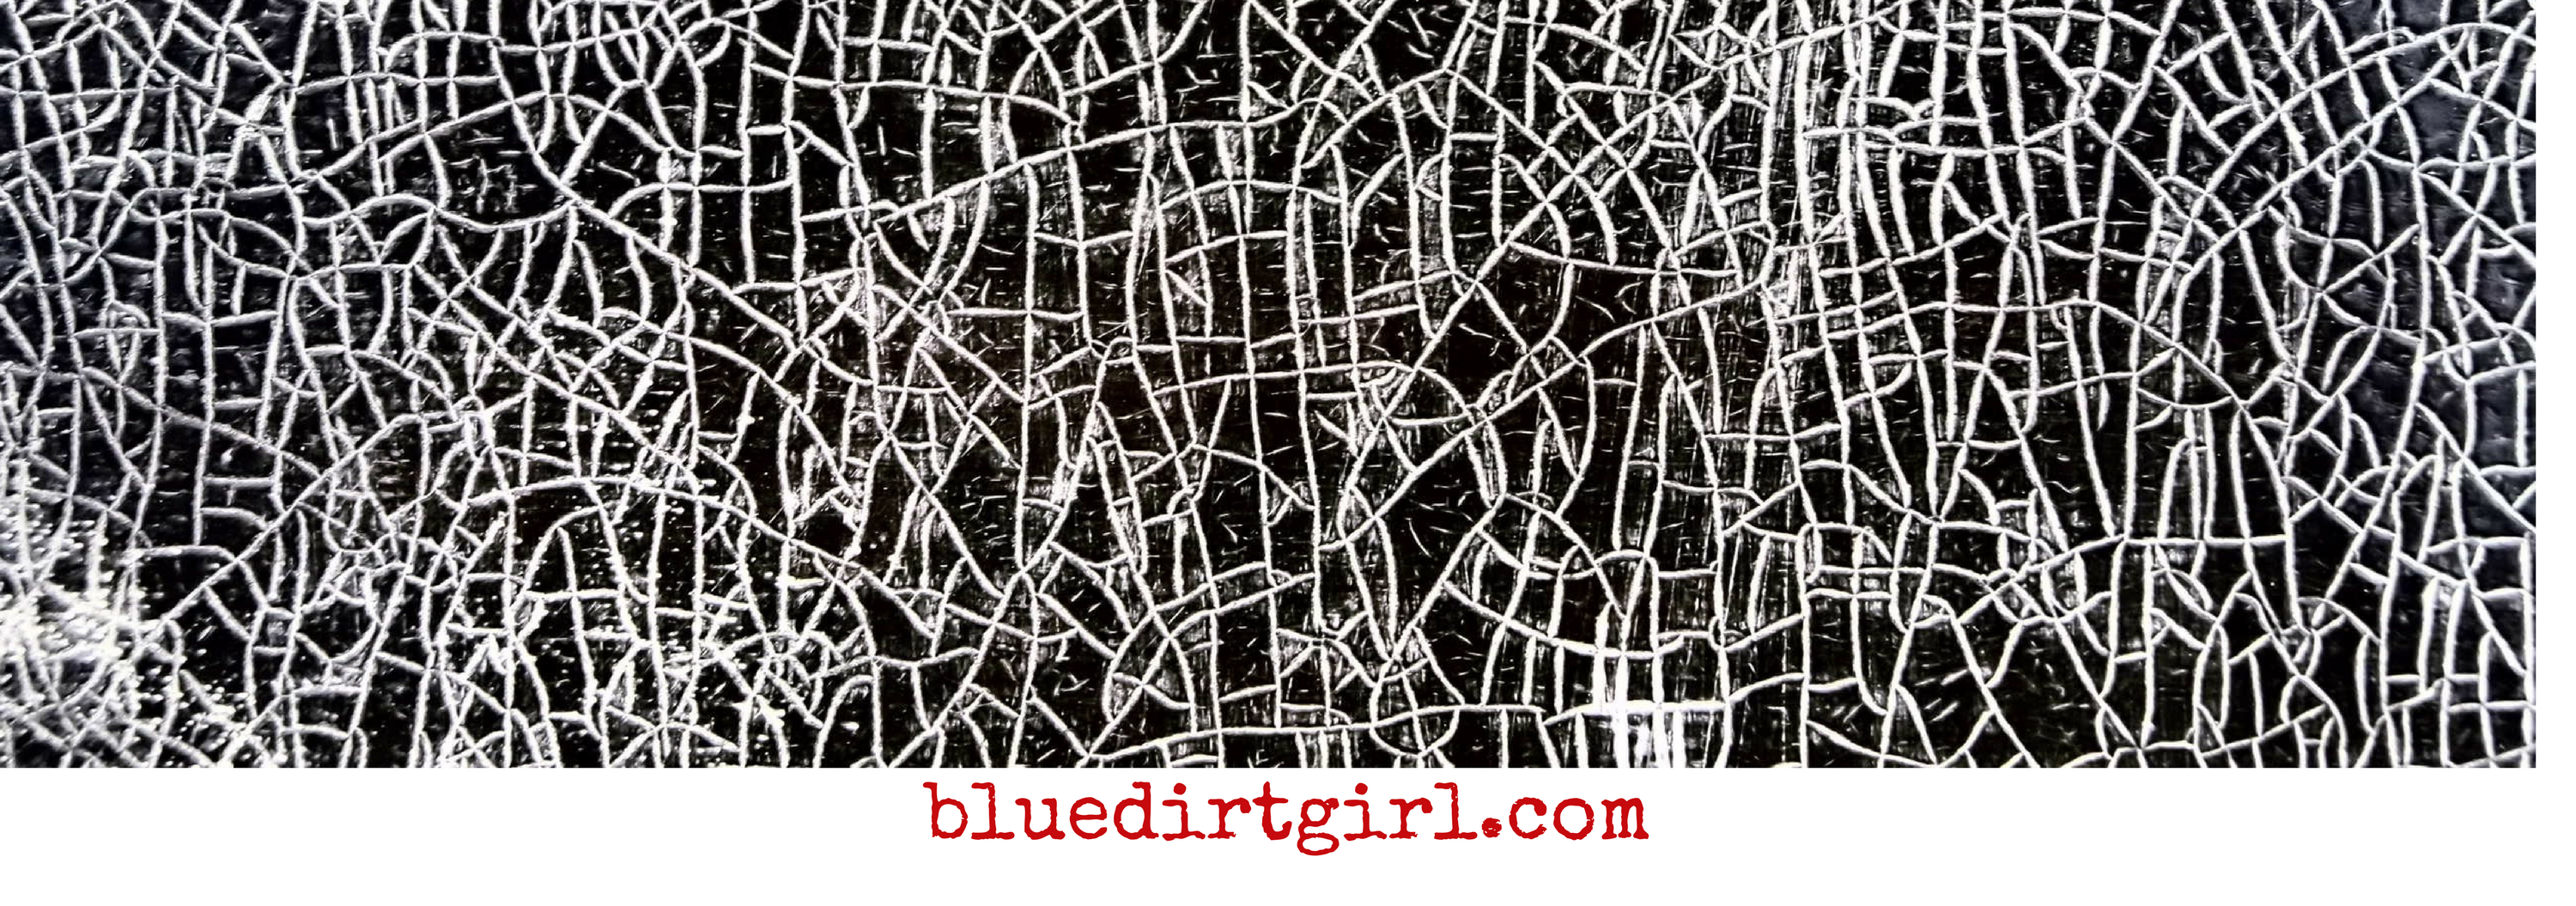 blue dirt girl augmented shed a tear image image by greg corrigan